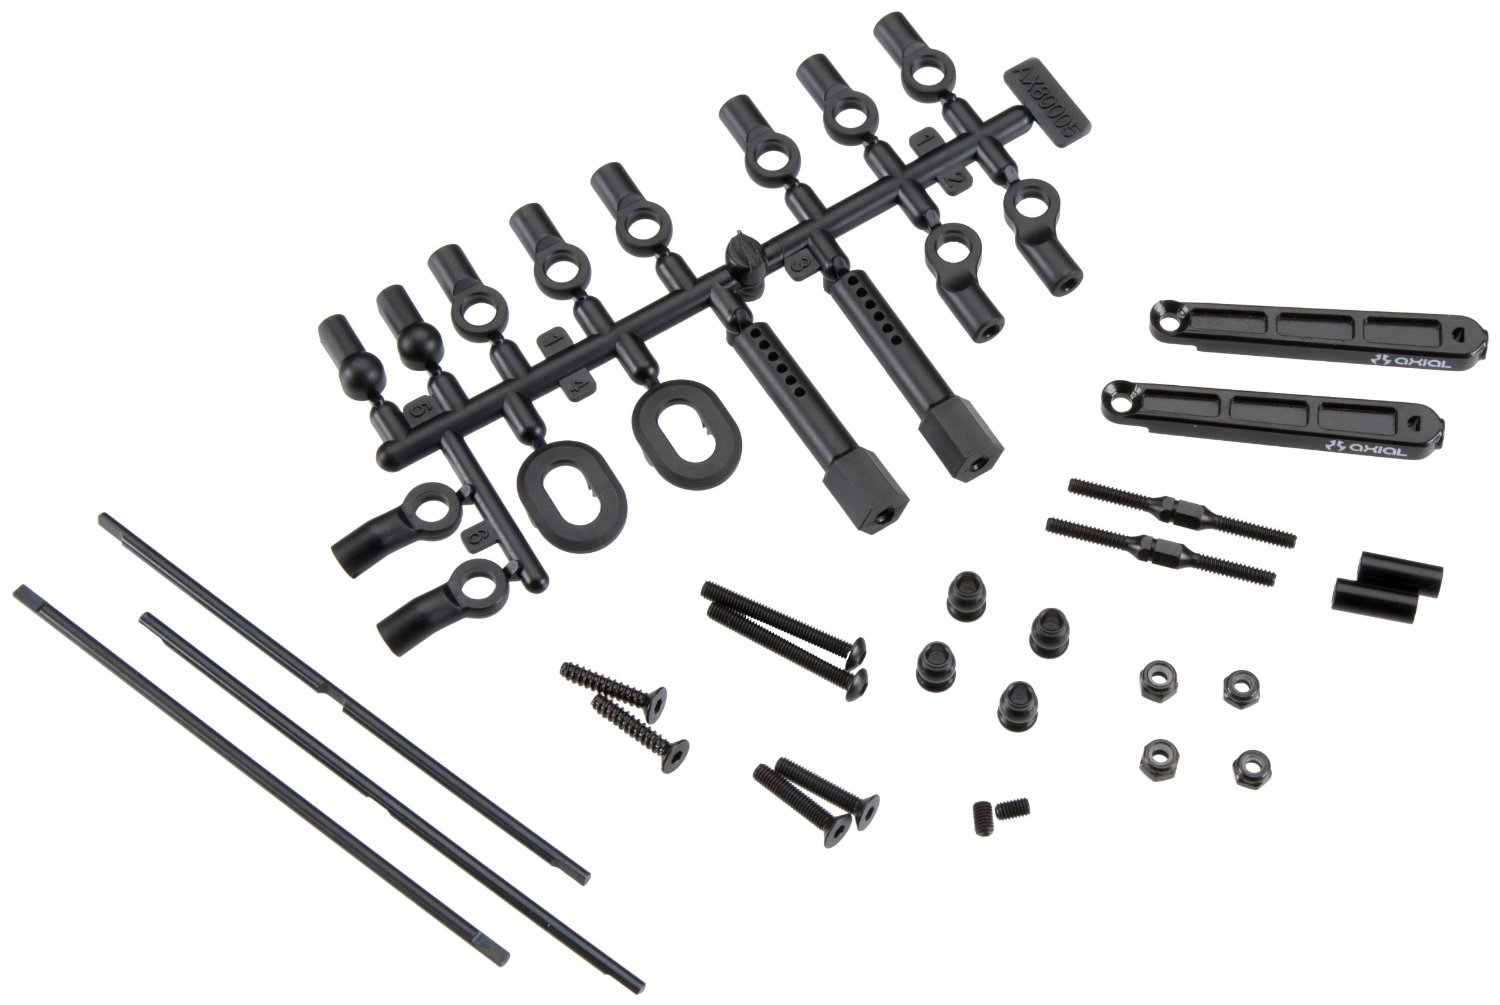 Axial AX30781 Wraith Front Sway Bar Set by Axial